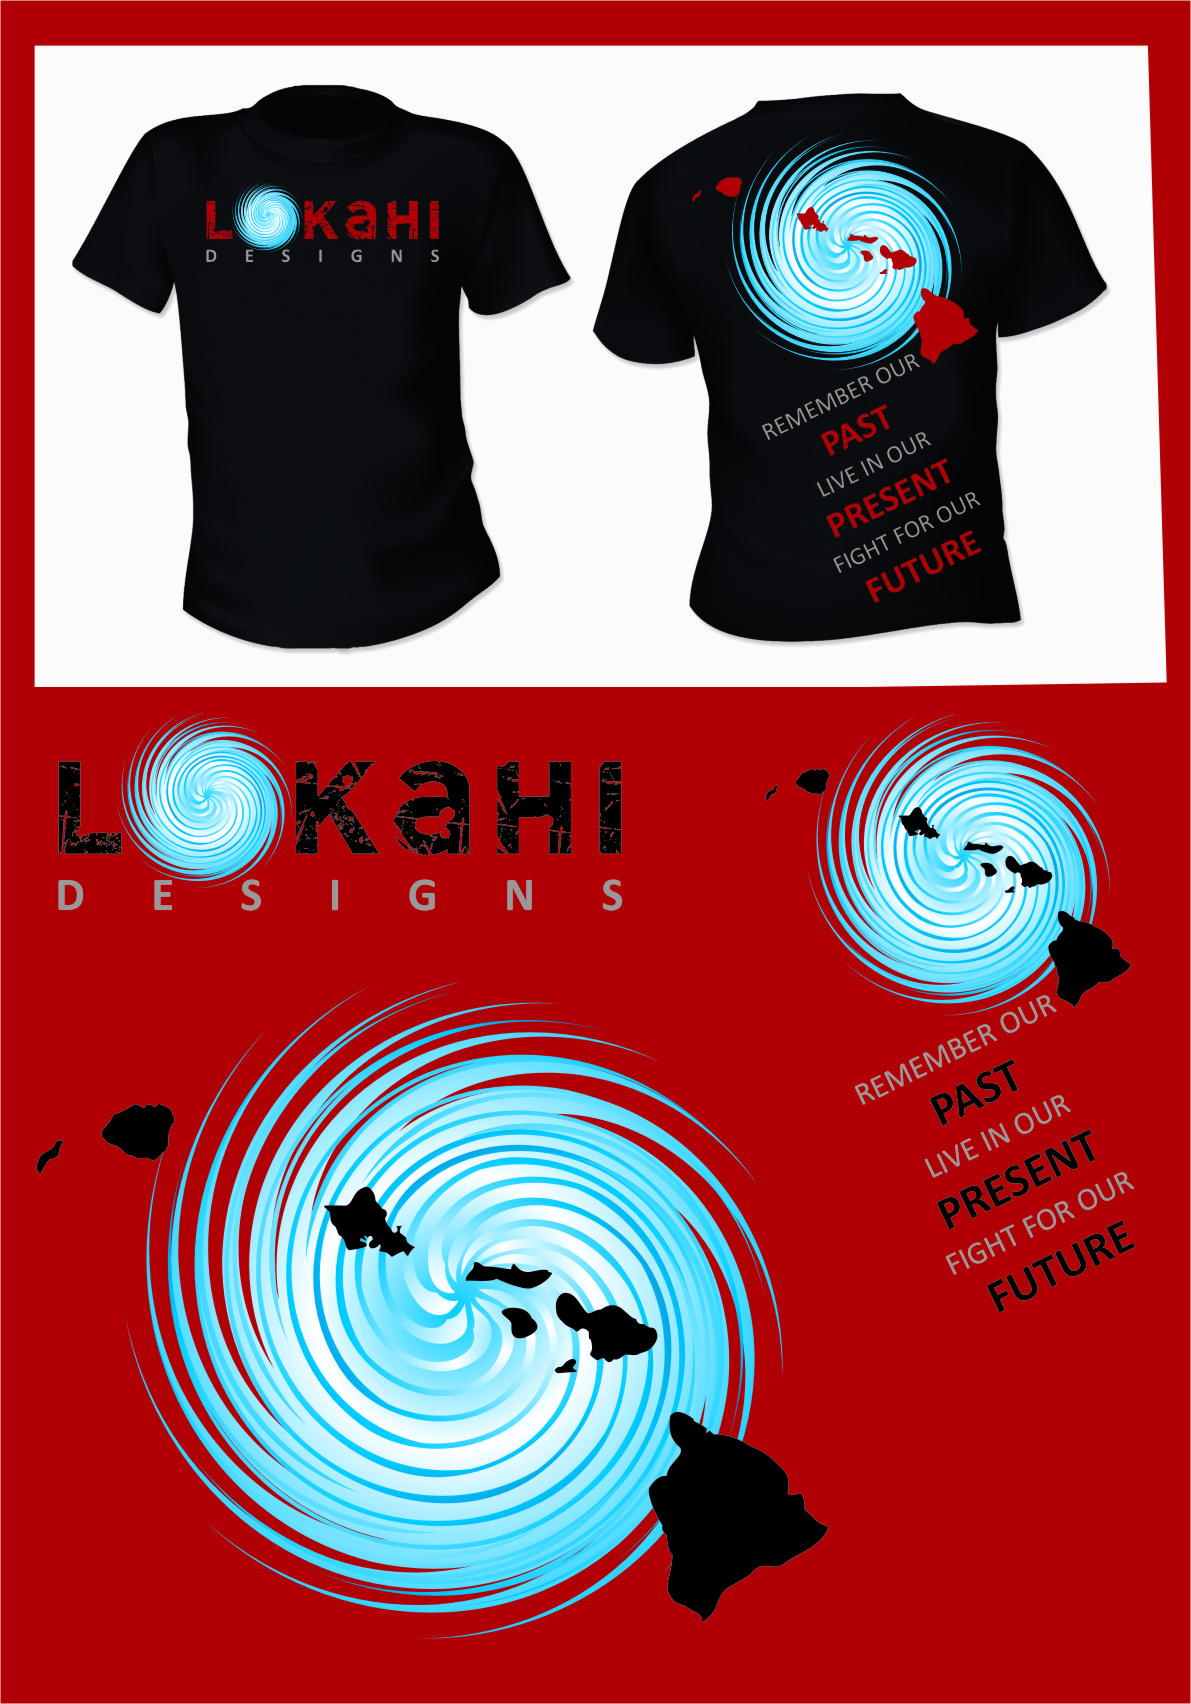 Clothing Design by Ngepet_art - Entry No. 123 in the Clothing Design Contest Creative Clothing Design for LOKAHI designs.